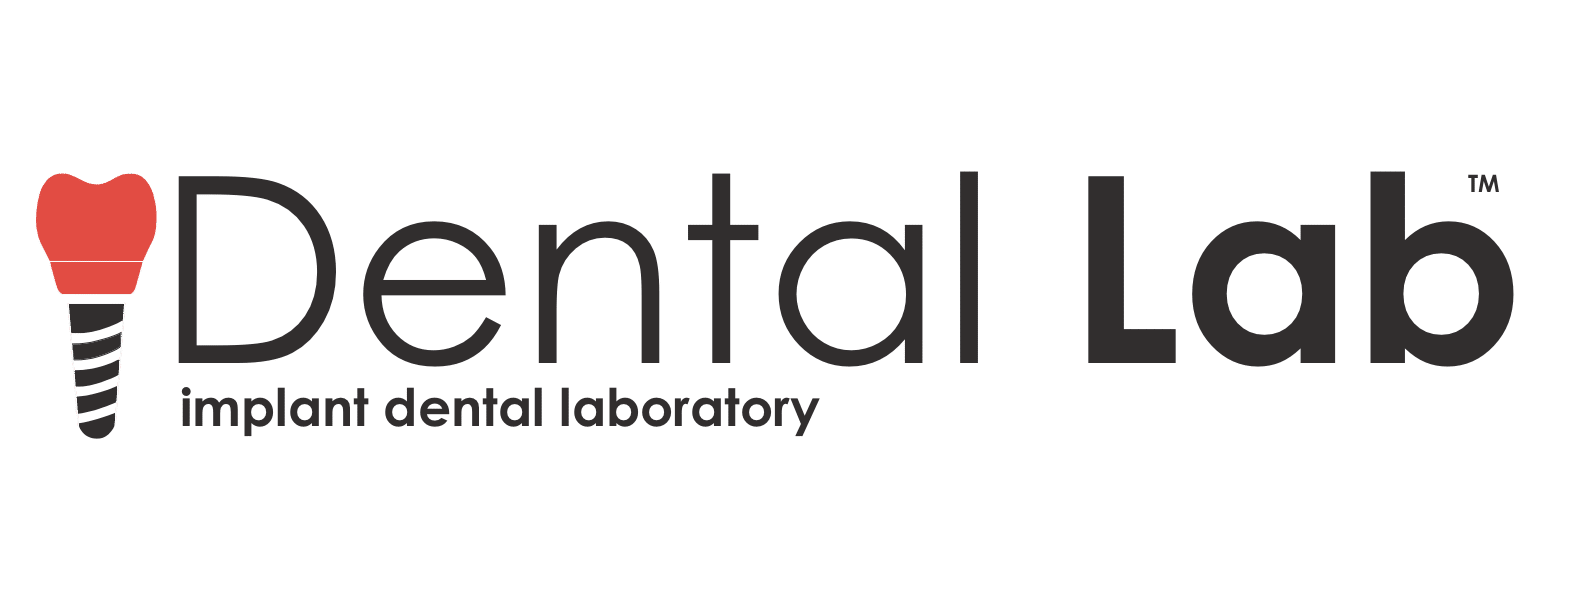 Implant Dental Laboratory